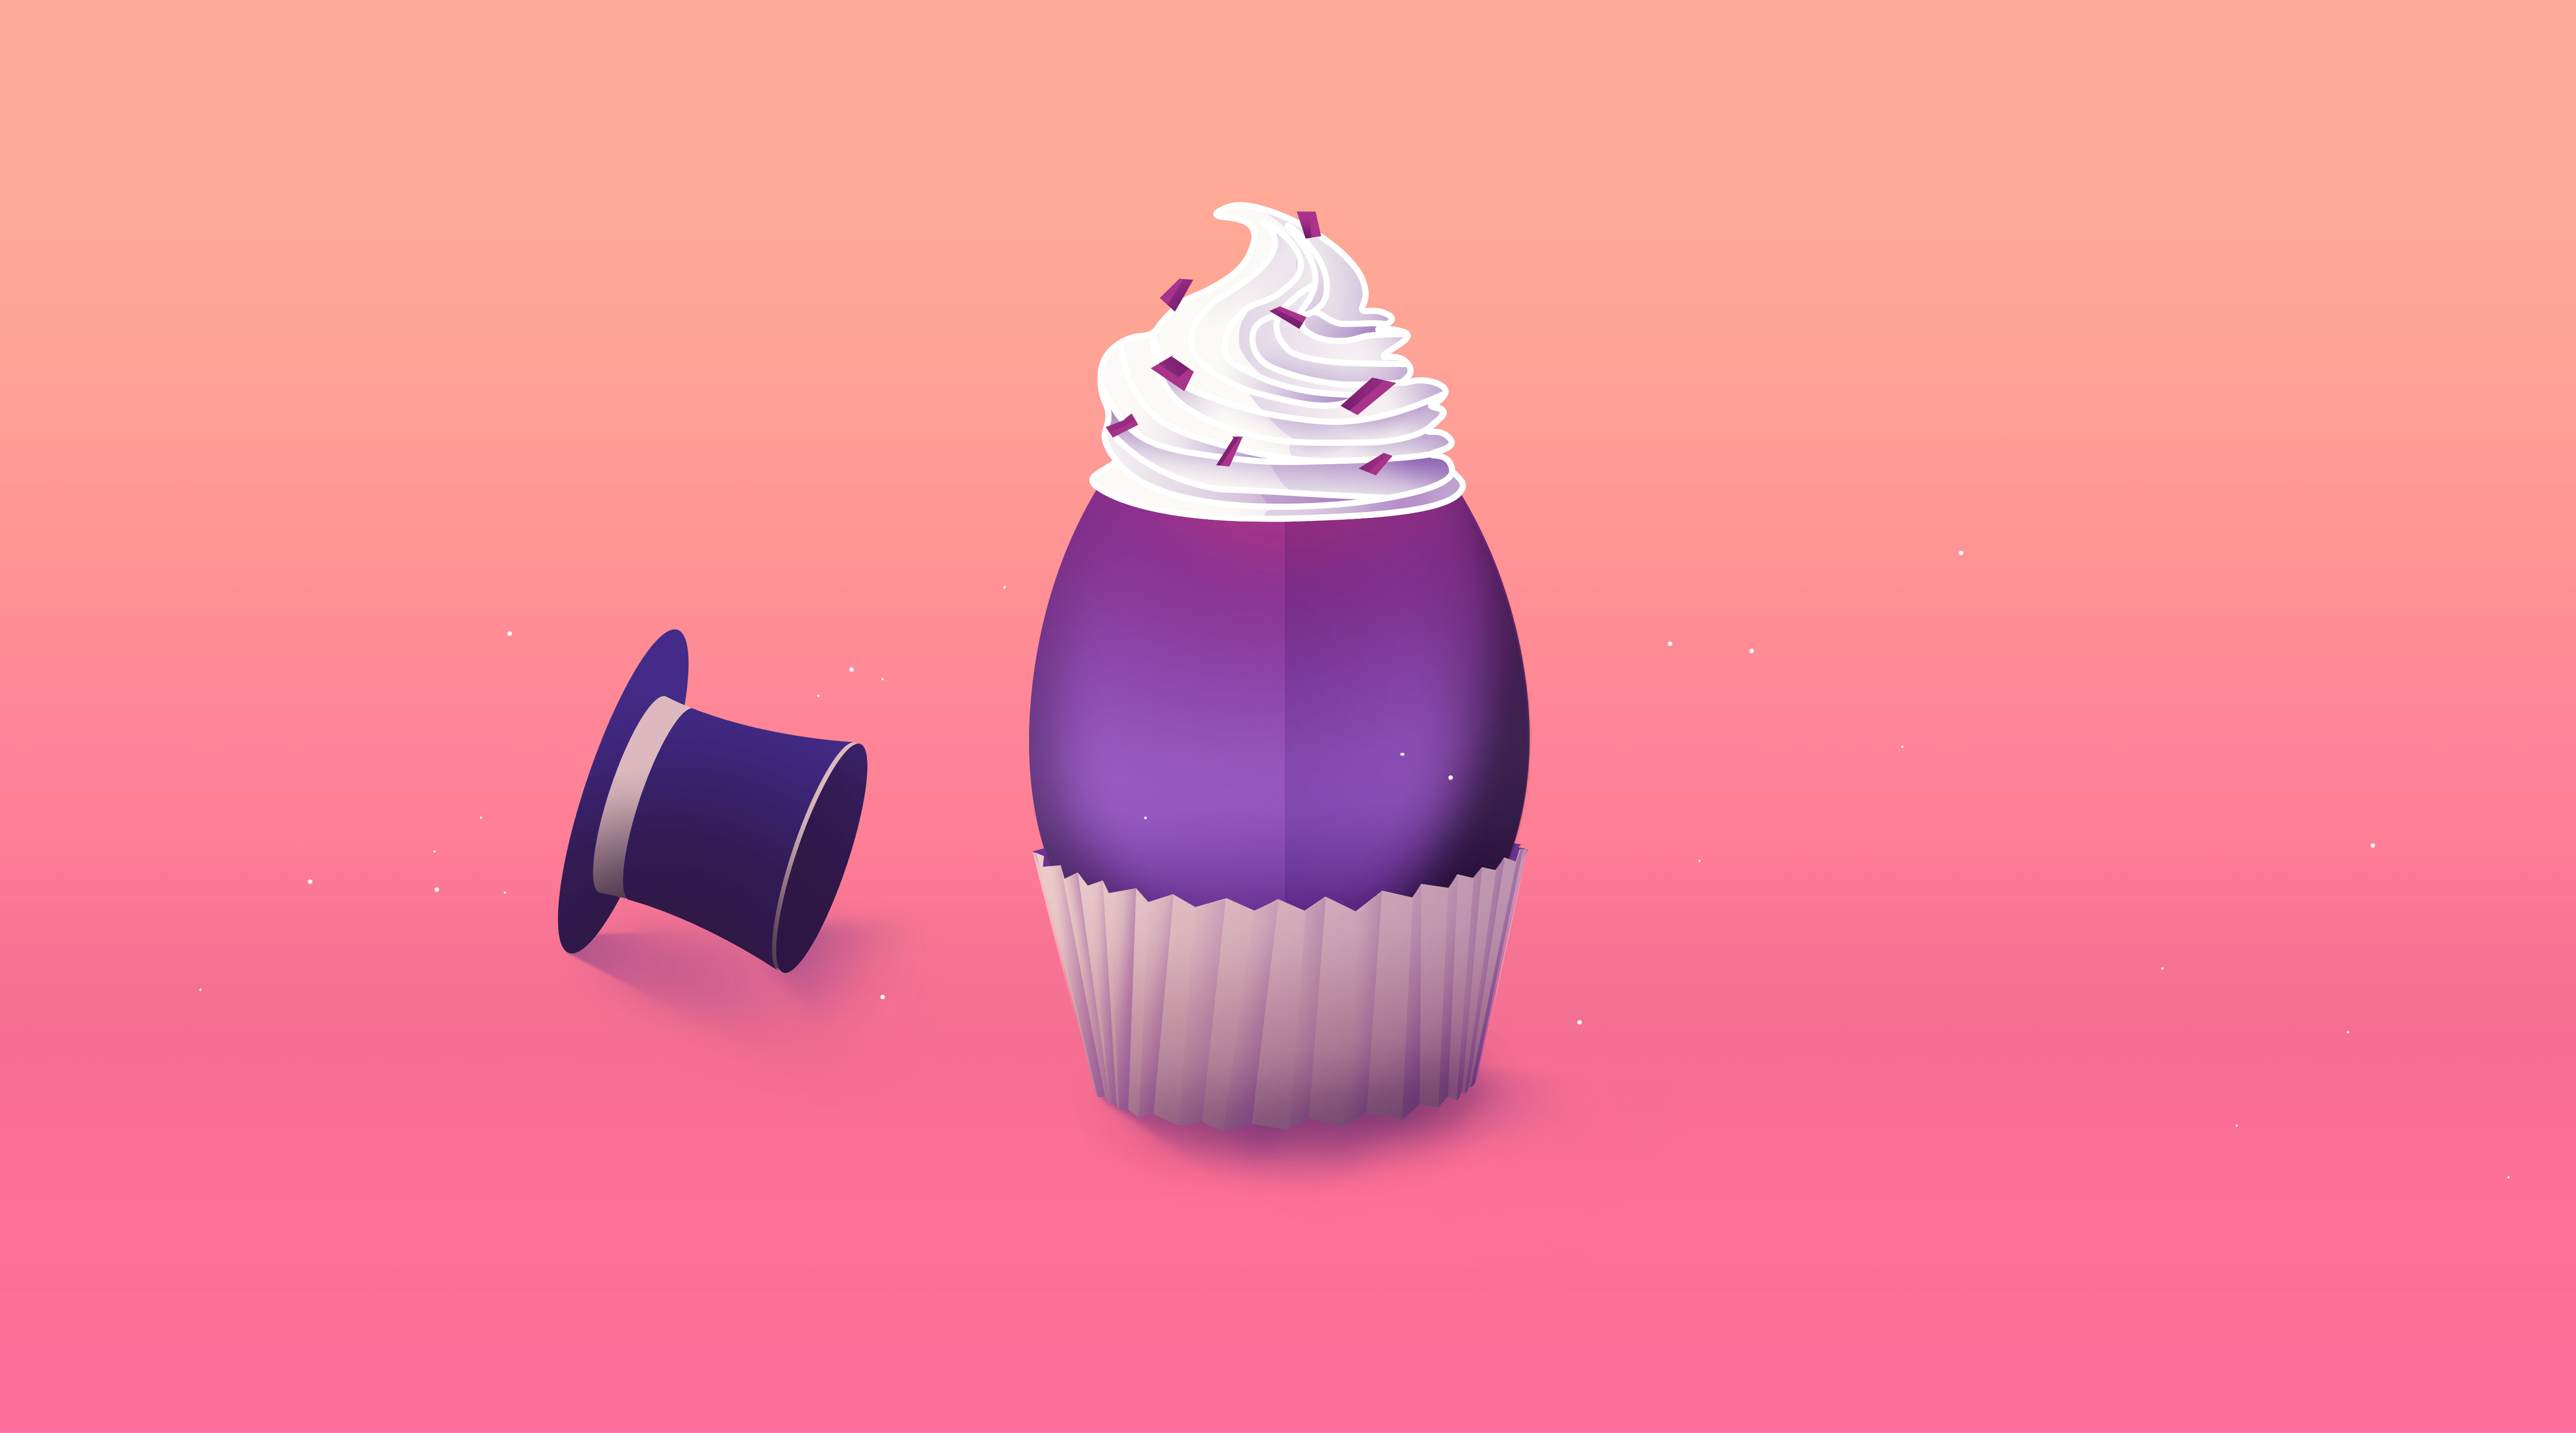 Mad Hatter's favourite cupcake